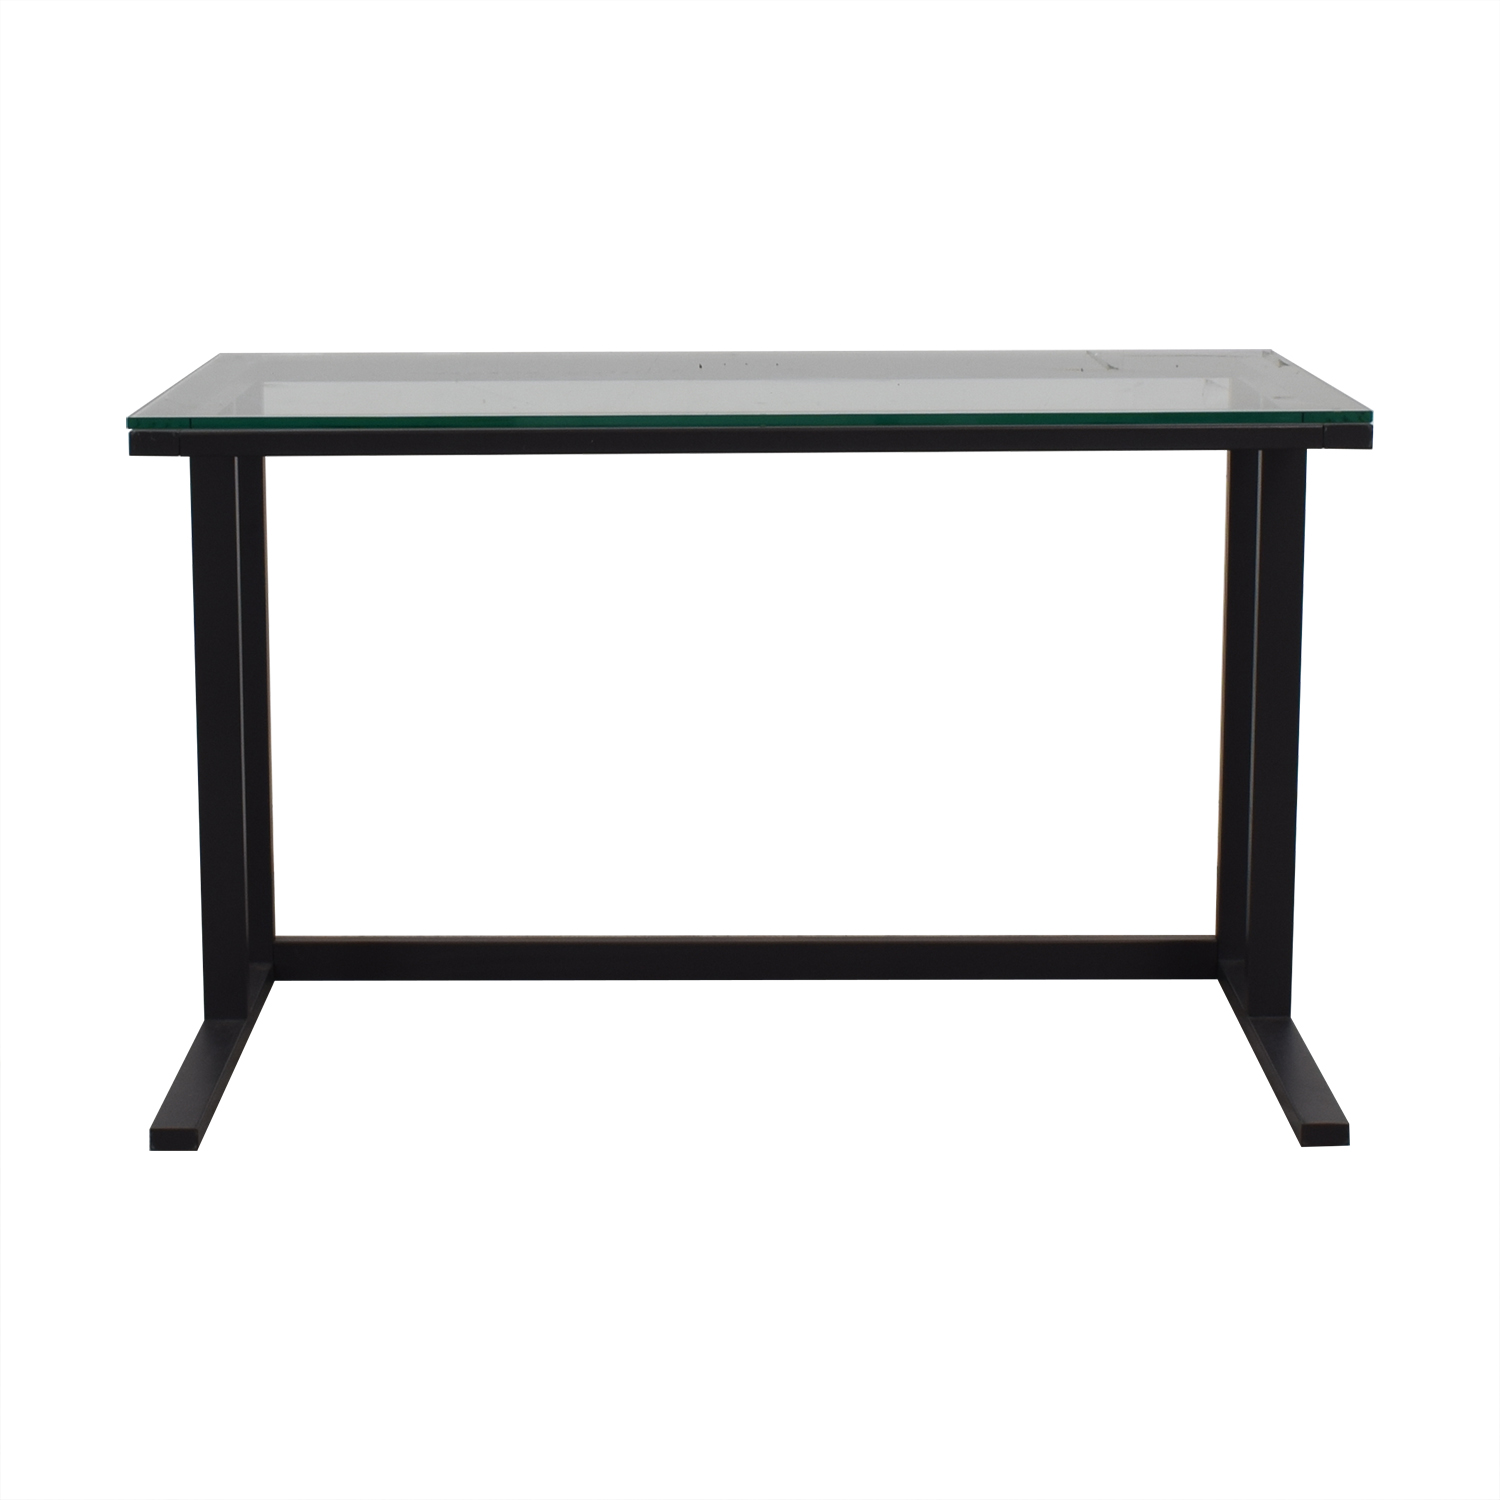 buy  Glass and Black Base Desk online